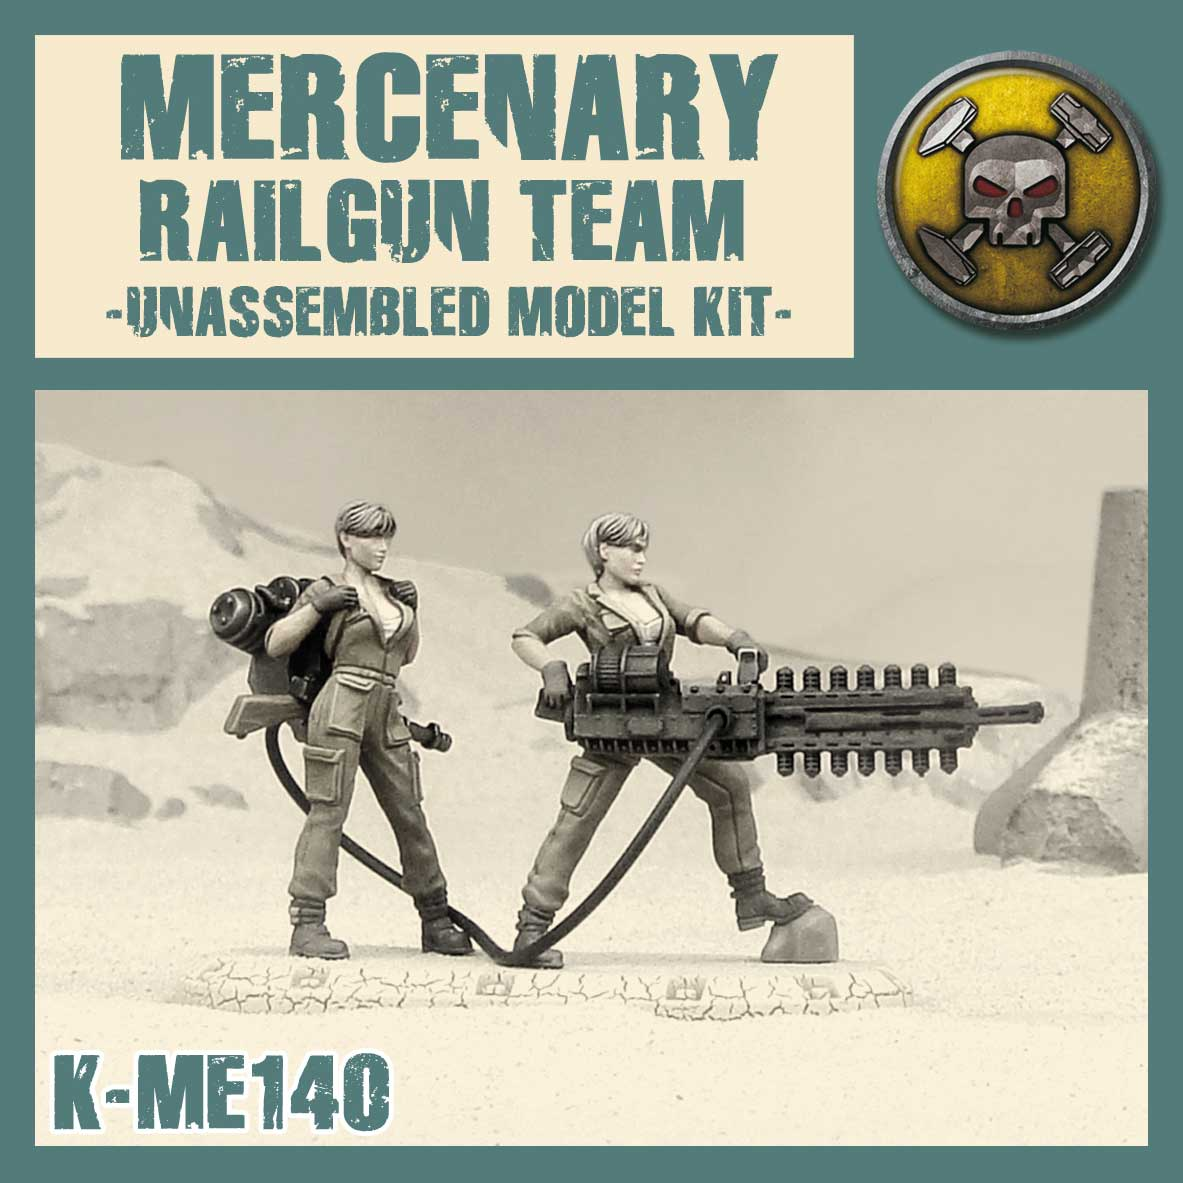 Mercenary Railgun Team Kit